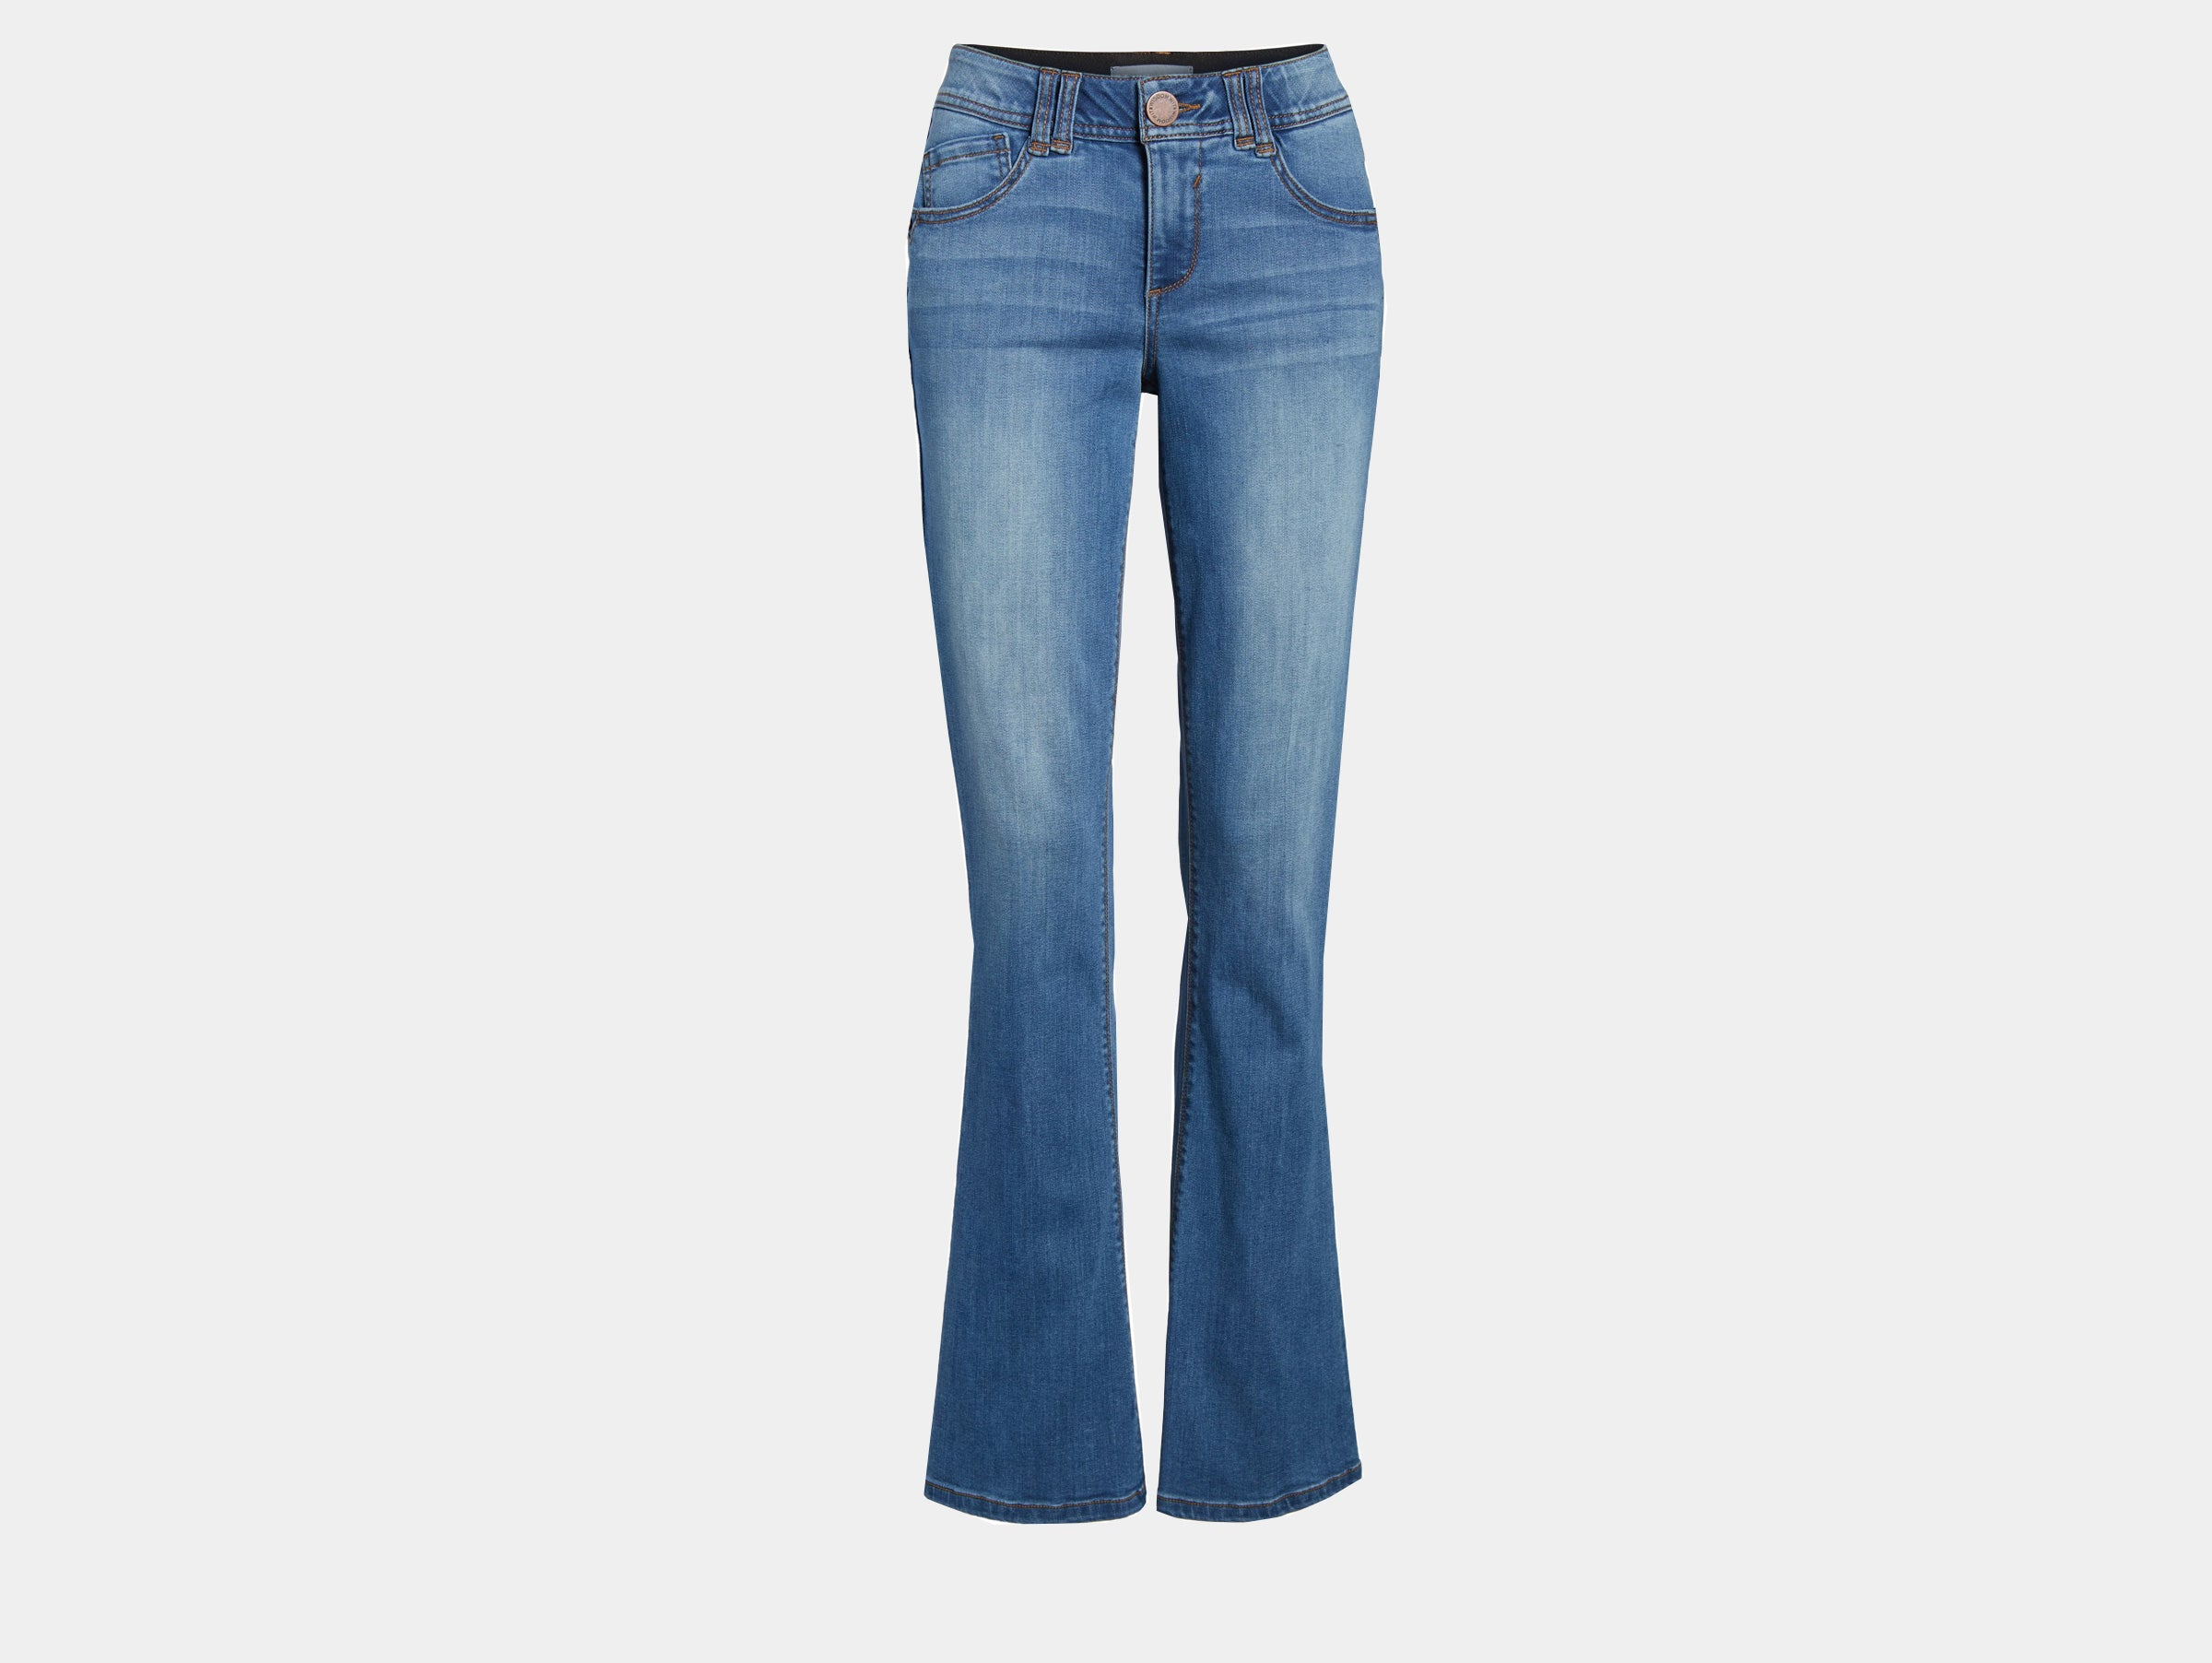 Wit + Wisdom - Ab solution itty bitty bootcut blue denim jeans